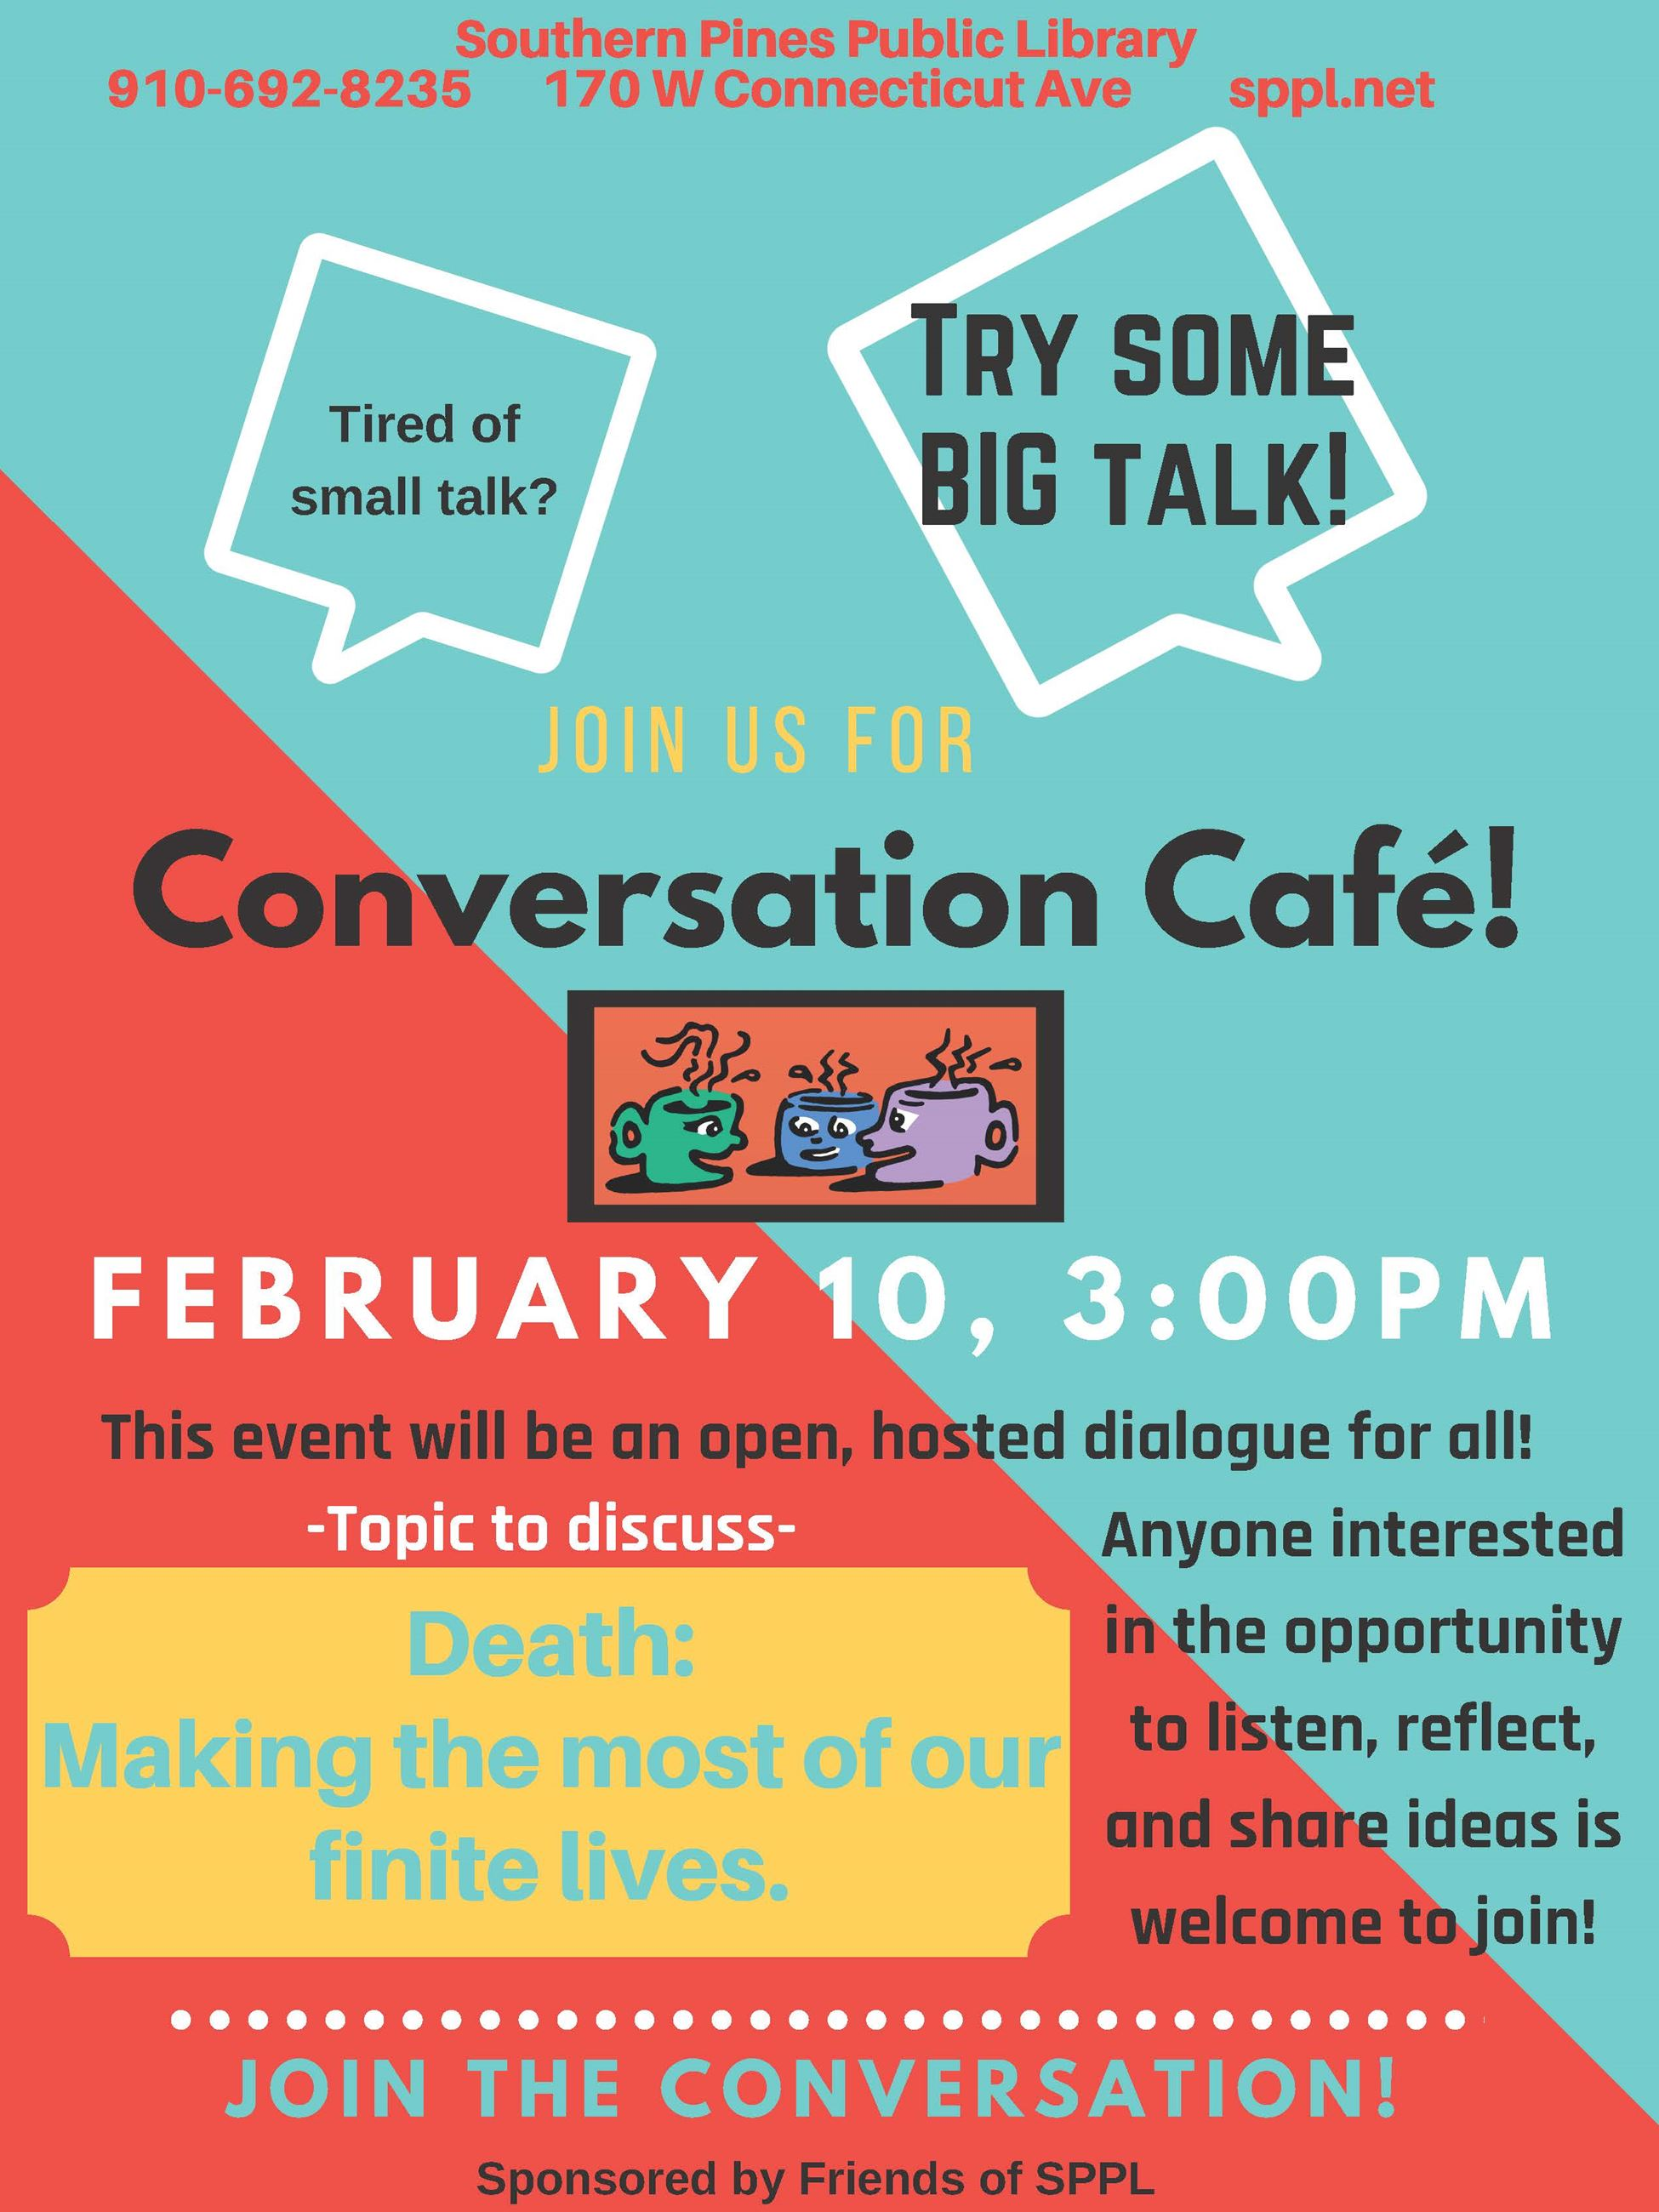 Conversation Cafe Information for February